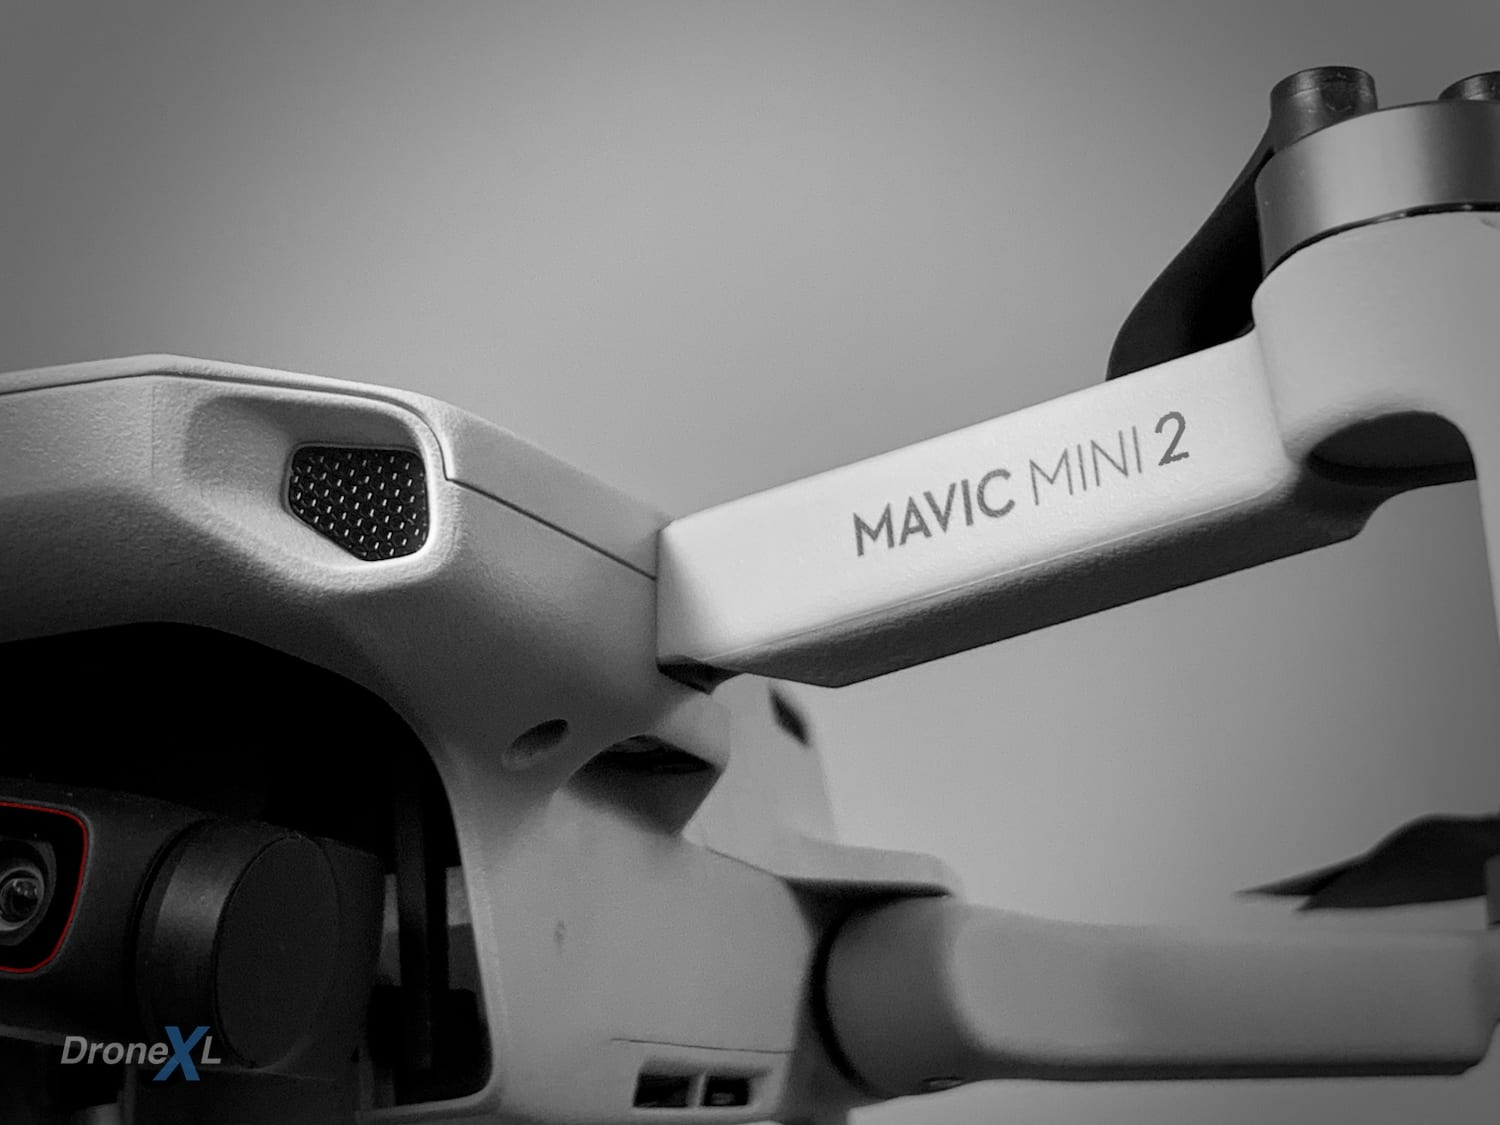 DJI Mavic Mini 2 priced at $449 and $599 for Fly More Combo